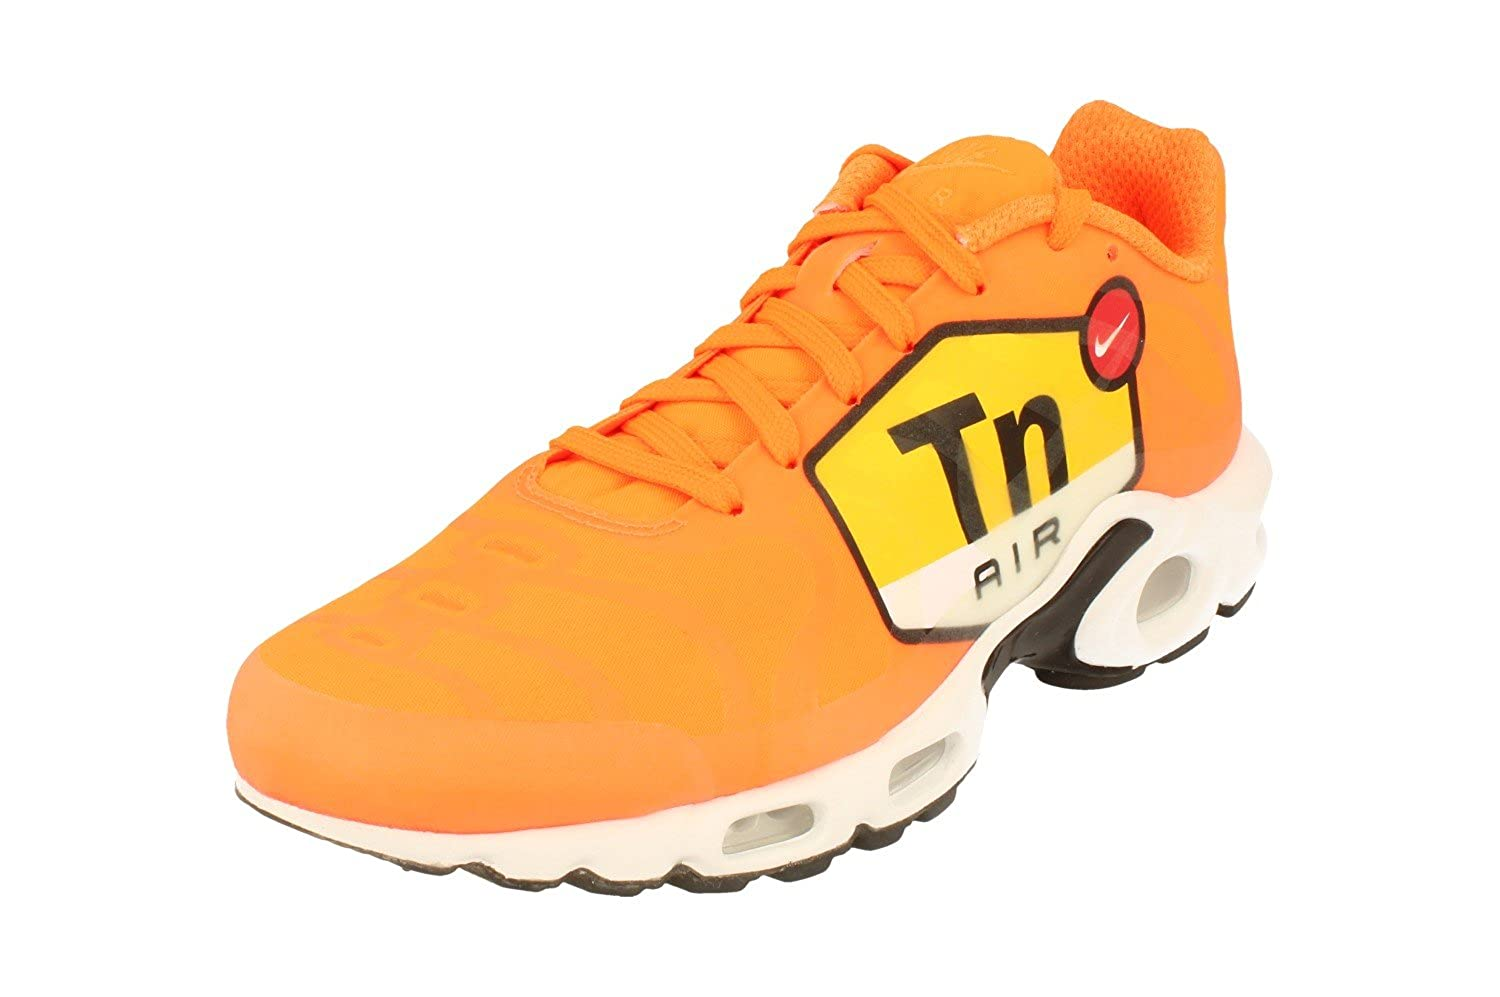 019f2d5d11 Nike Air Max Plus NS GPX Mens Running Trainers Aj7181 Sneakers Shoes:  Amazon.ca: Shoes & Handbags